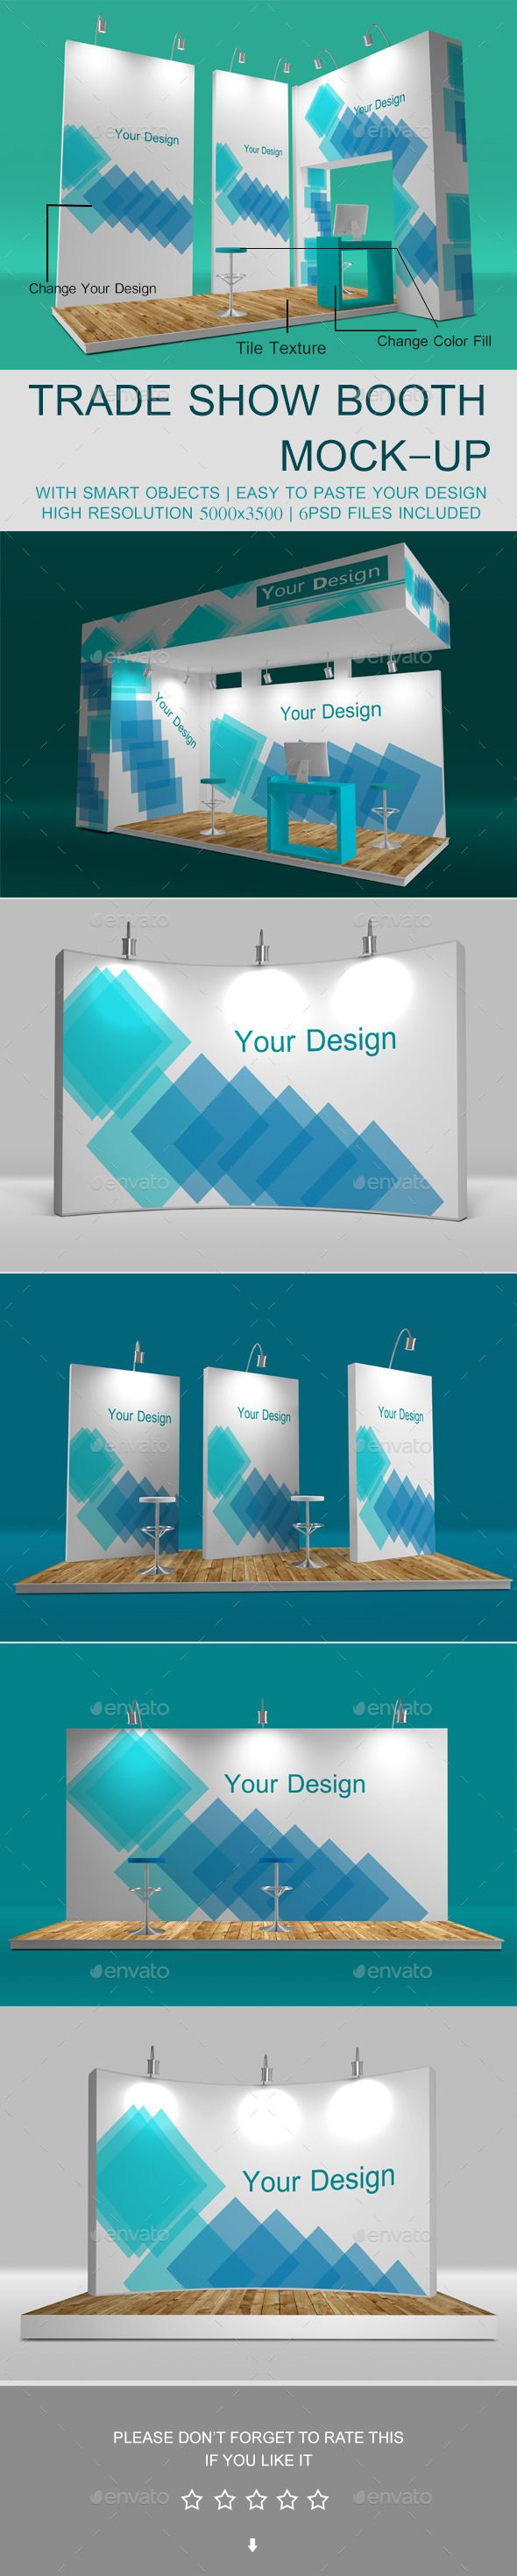 Exhibition Booth Psd : Trade show booth mockup photoshop psd cs